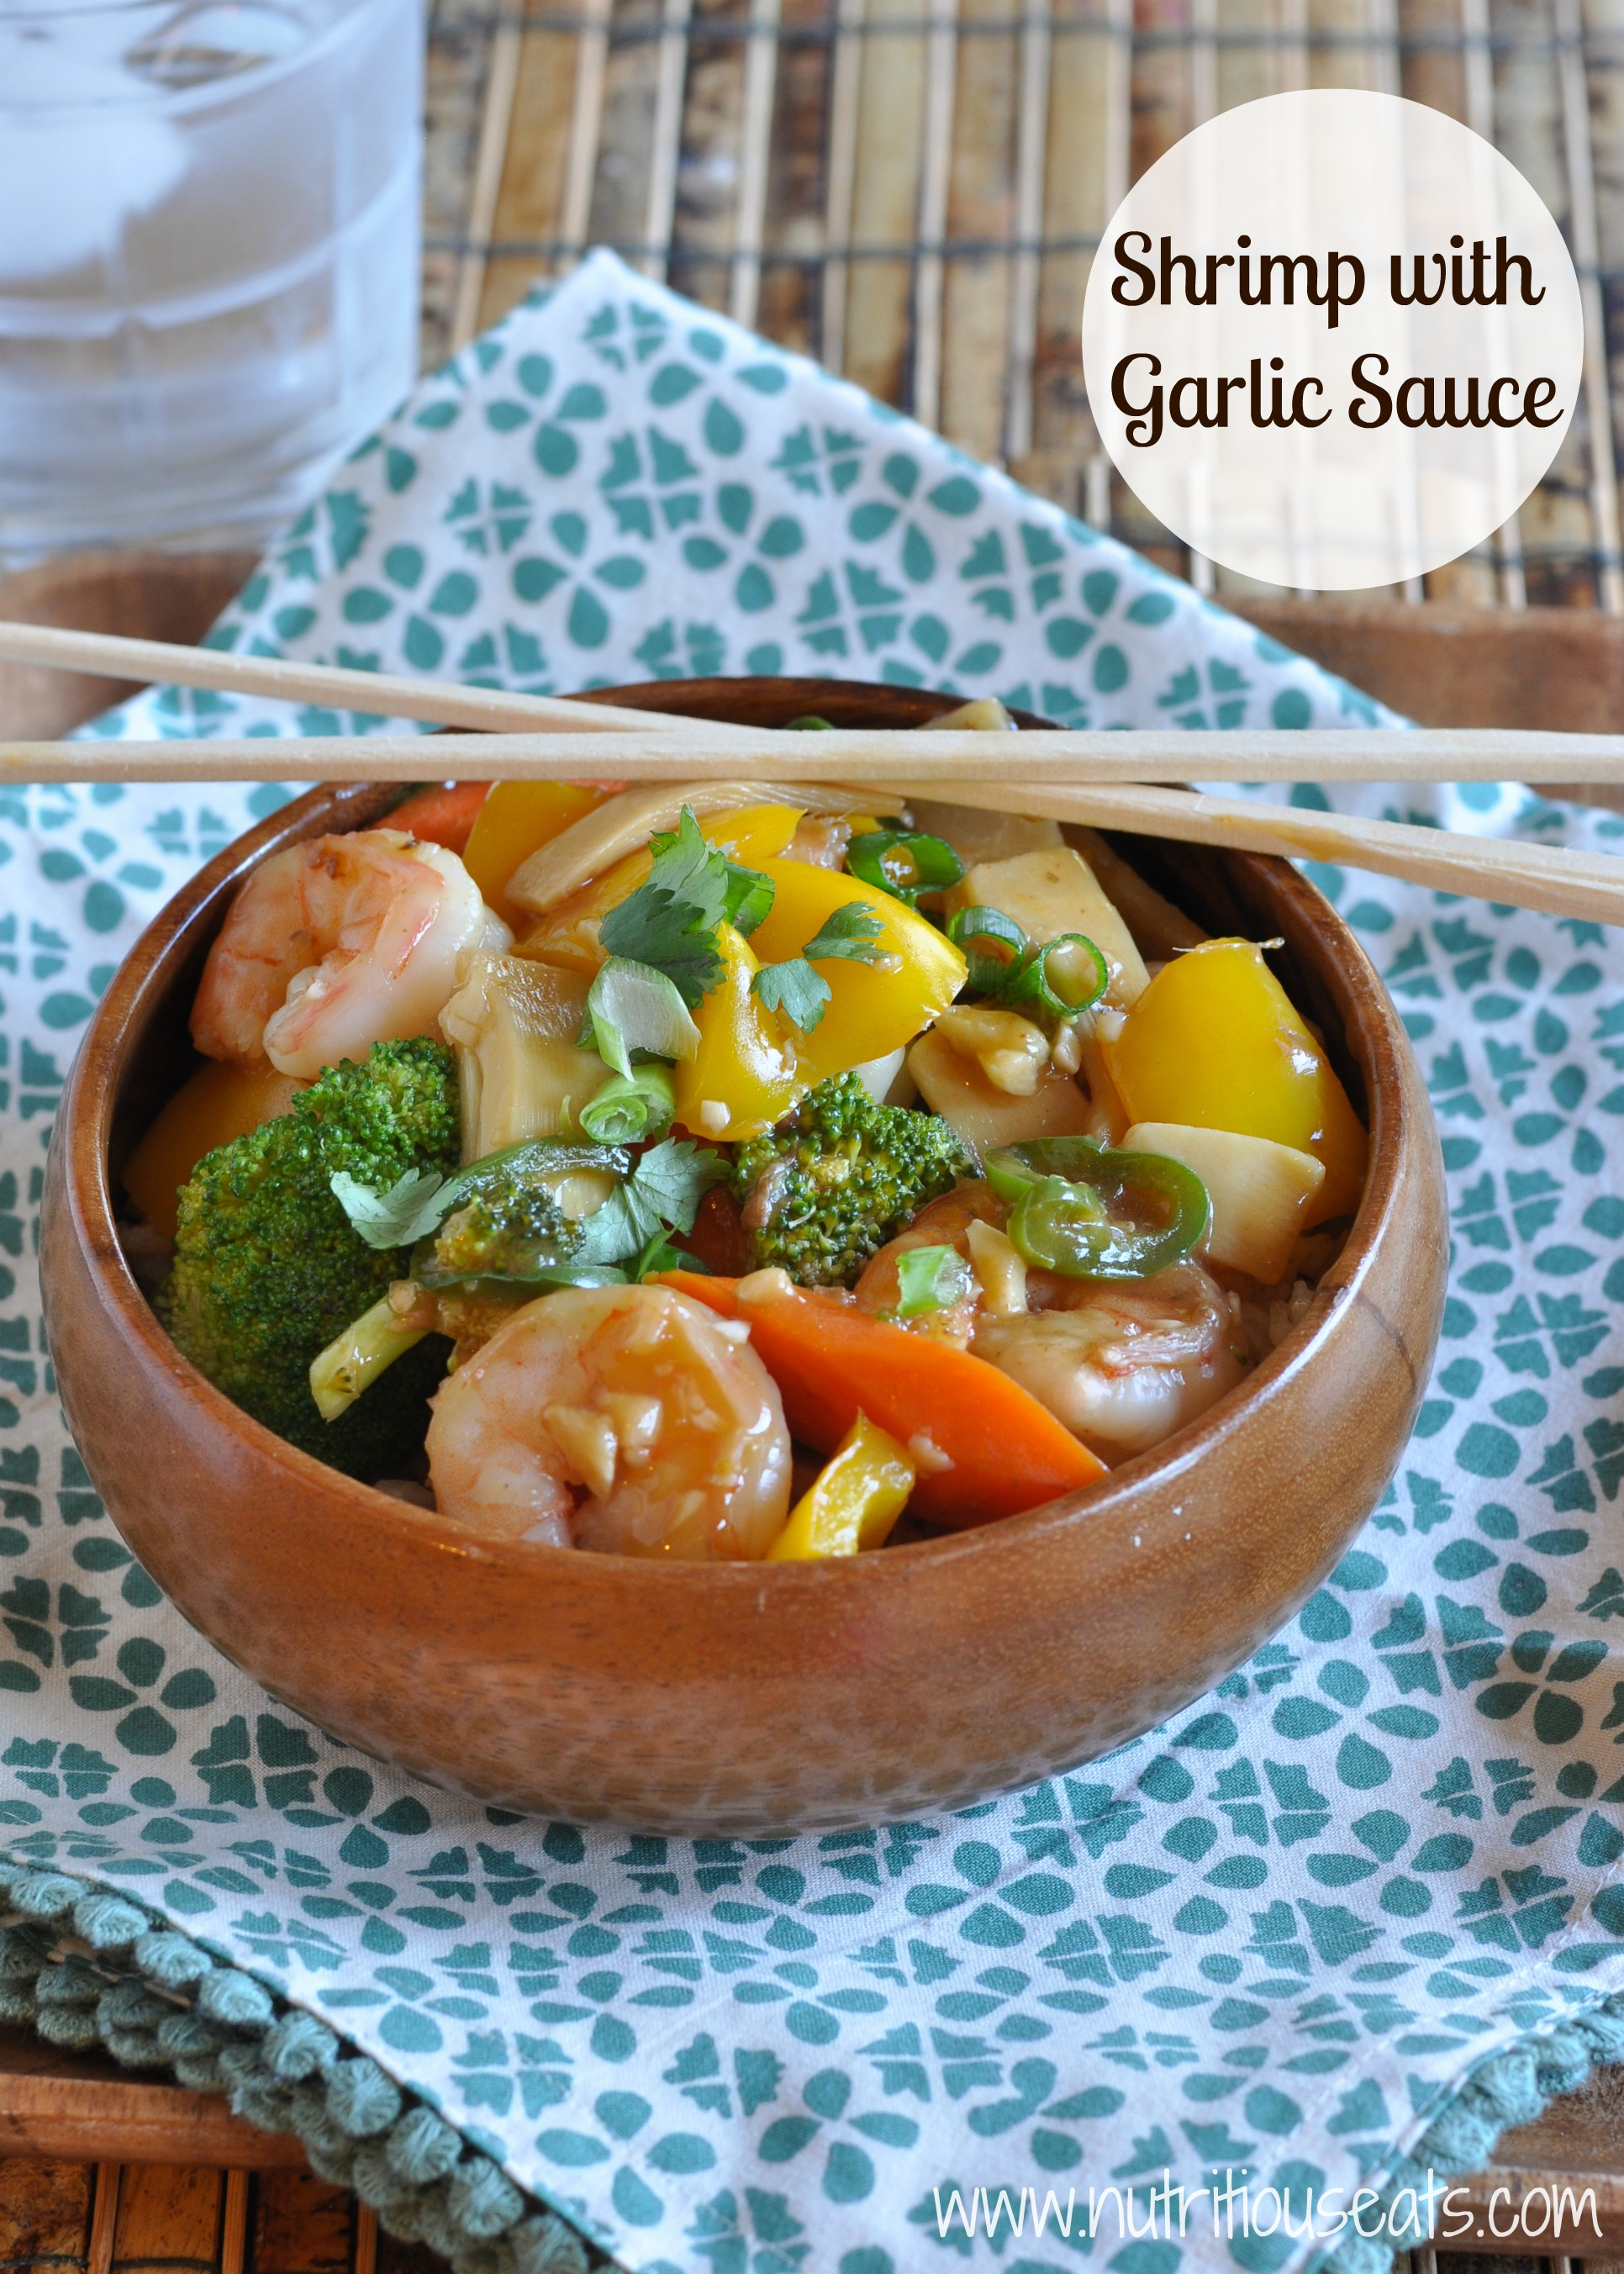 Shrimp with garlic sauce nutritious eats forumfinder Image collections